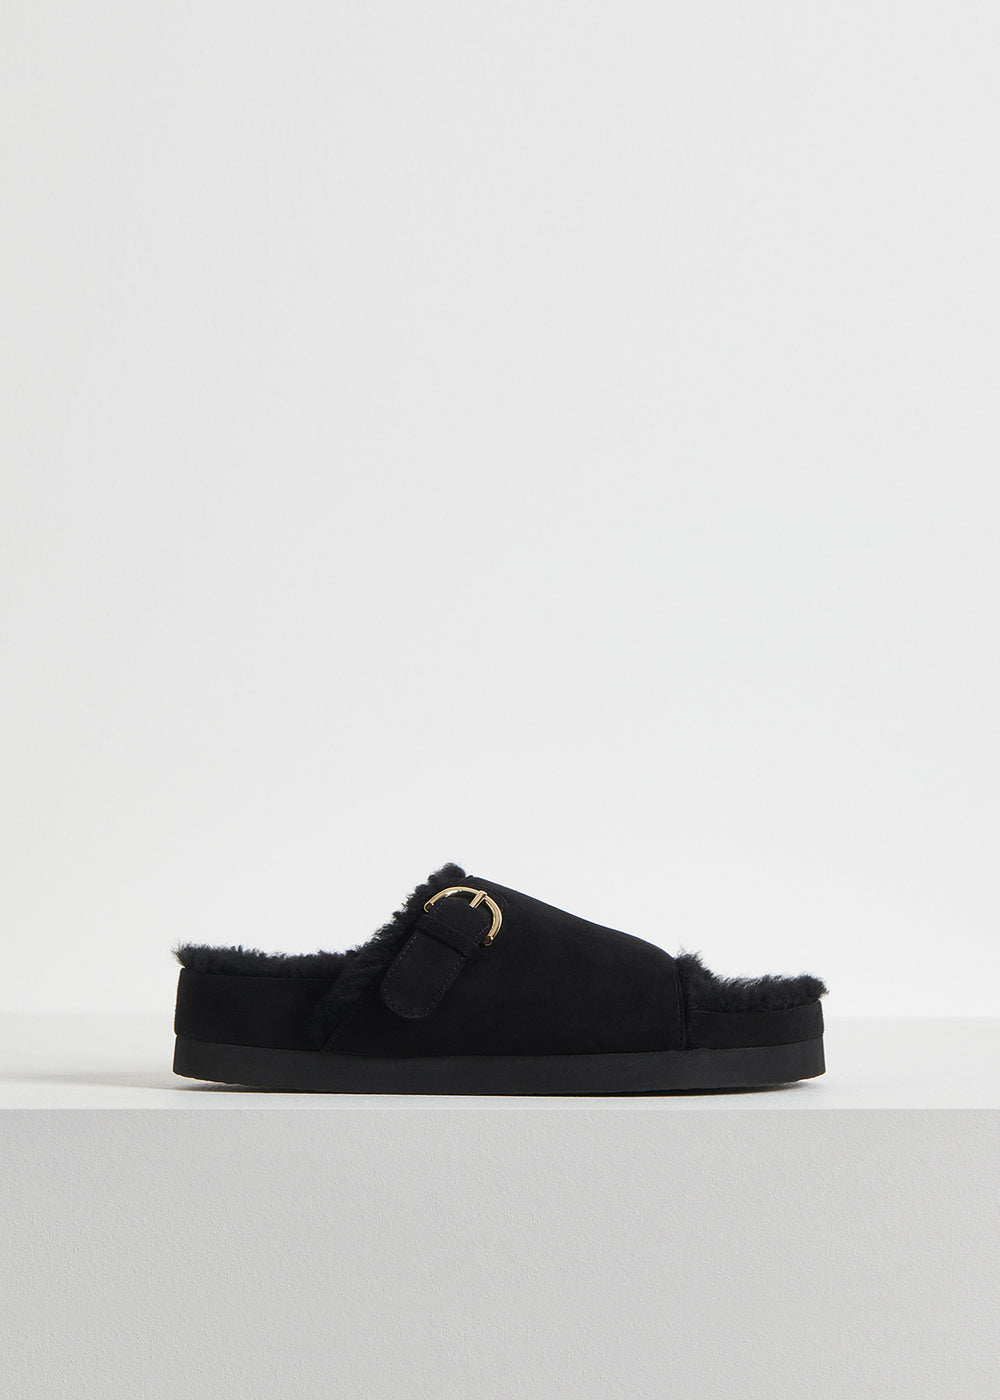 Slide Sandal in Shearling - Dark Brown in Black by Co Collections